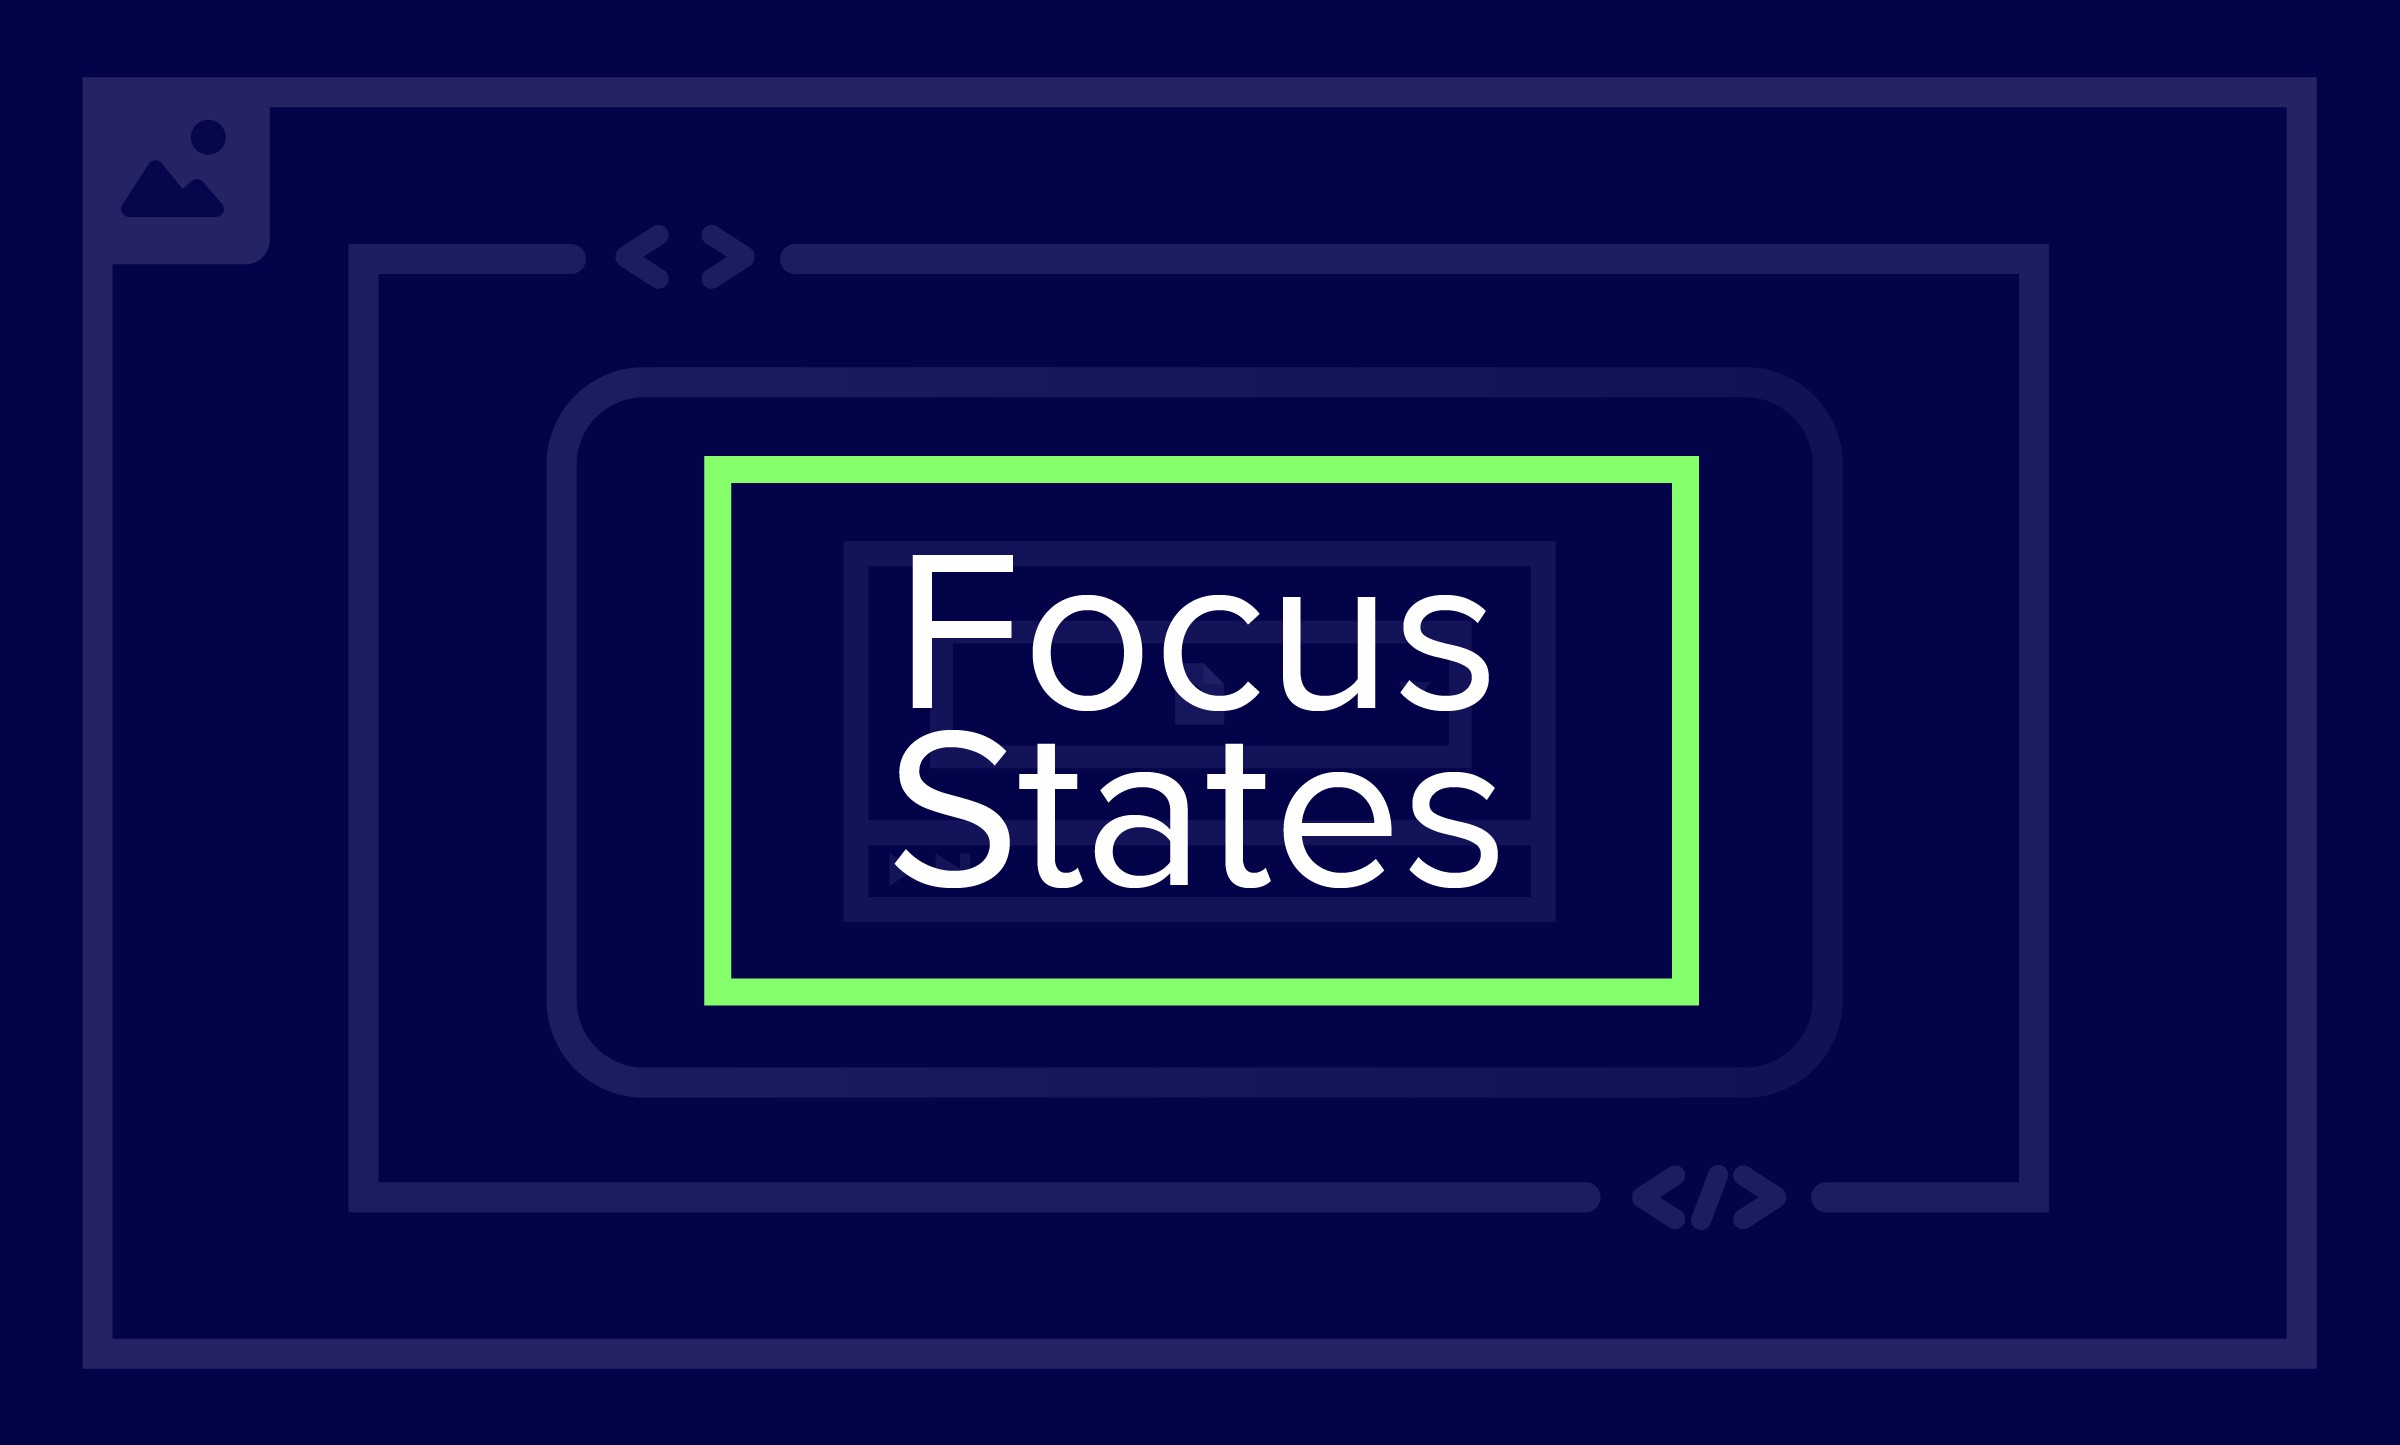 White text saying Focus States surrounded by a bright green box on a purple background with faded out rectangles.